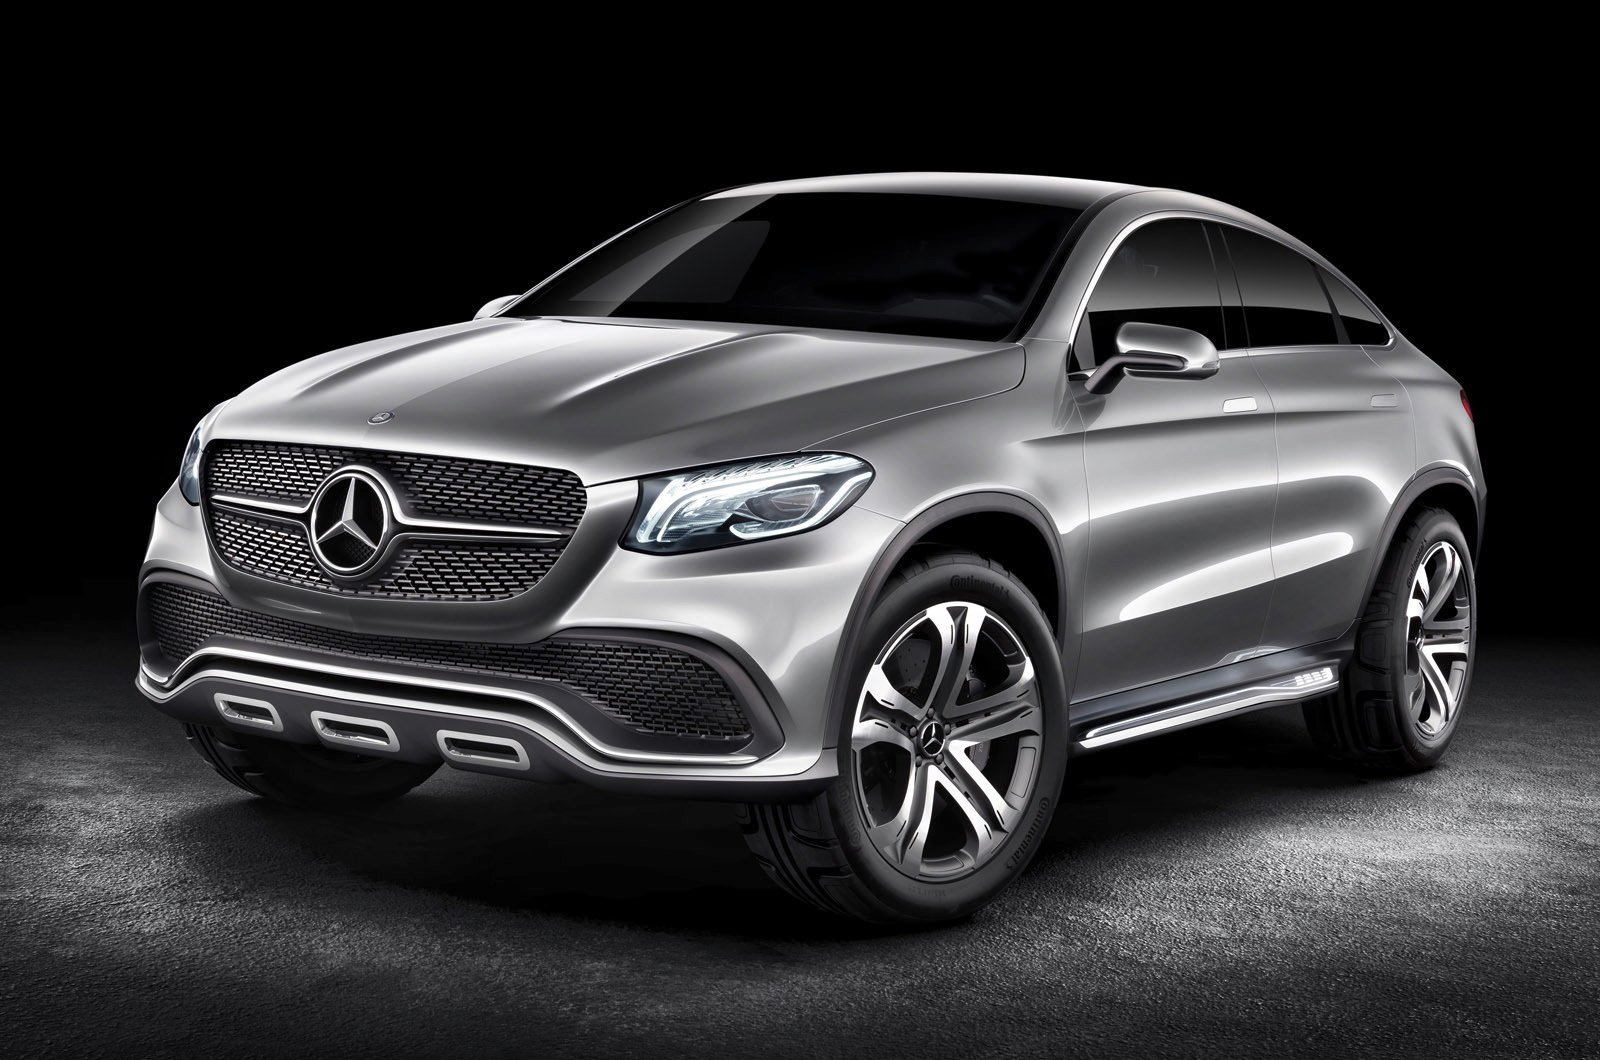 mercedes benz concept coupe suv targets bmw x6 photos 1 of 1. Black Bedroom Furniture Sets. Home Design Ideas